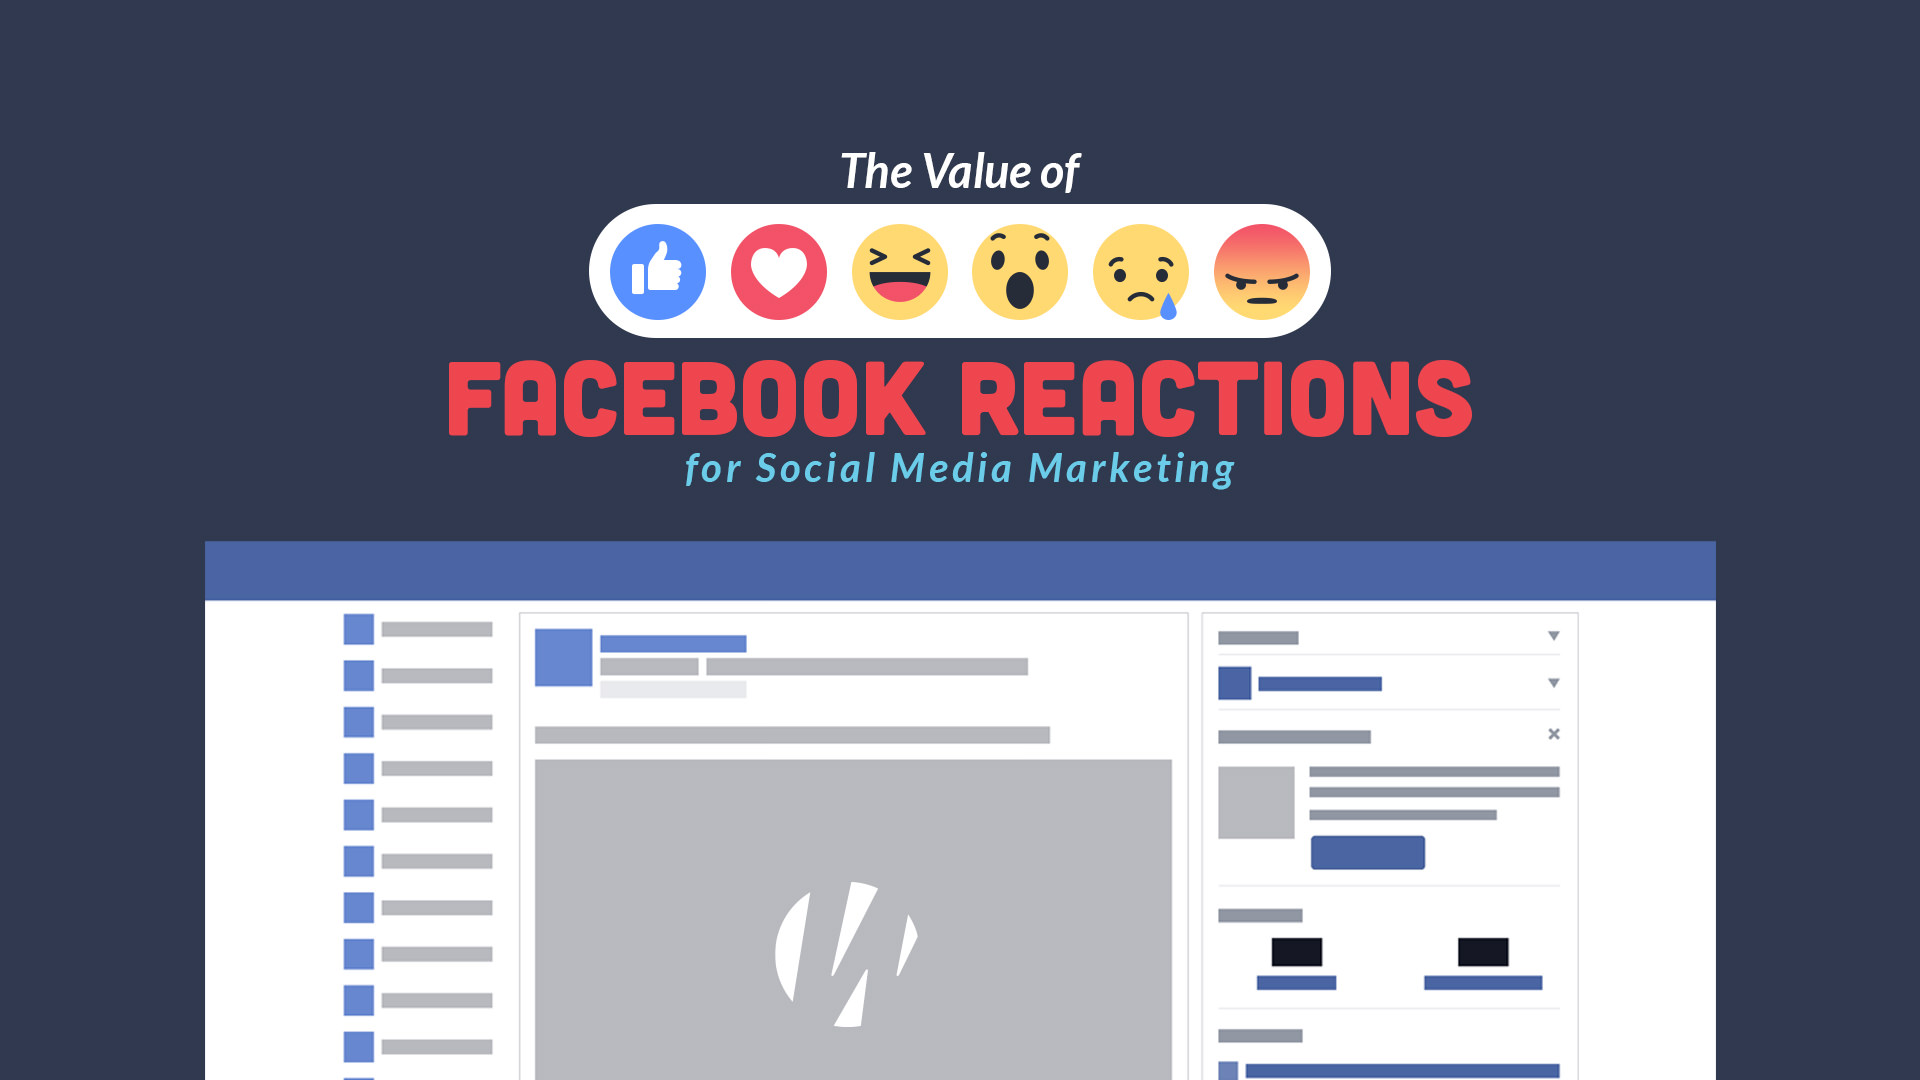 The Value of Facebook Reactions for Social Media Marketing